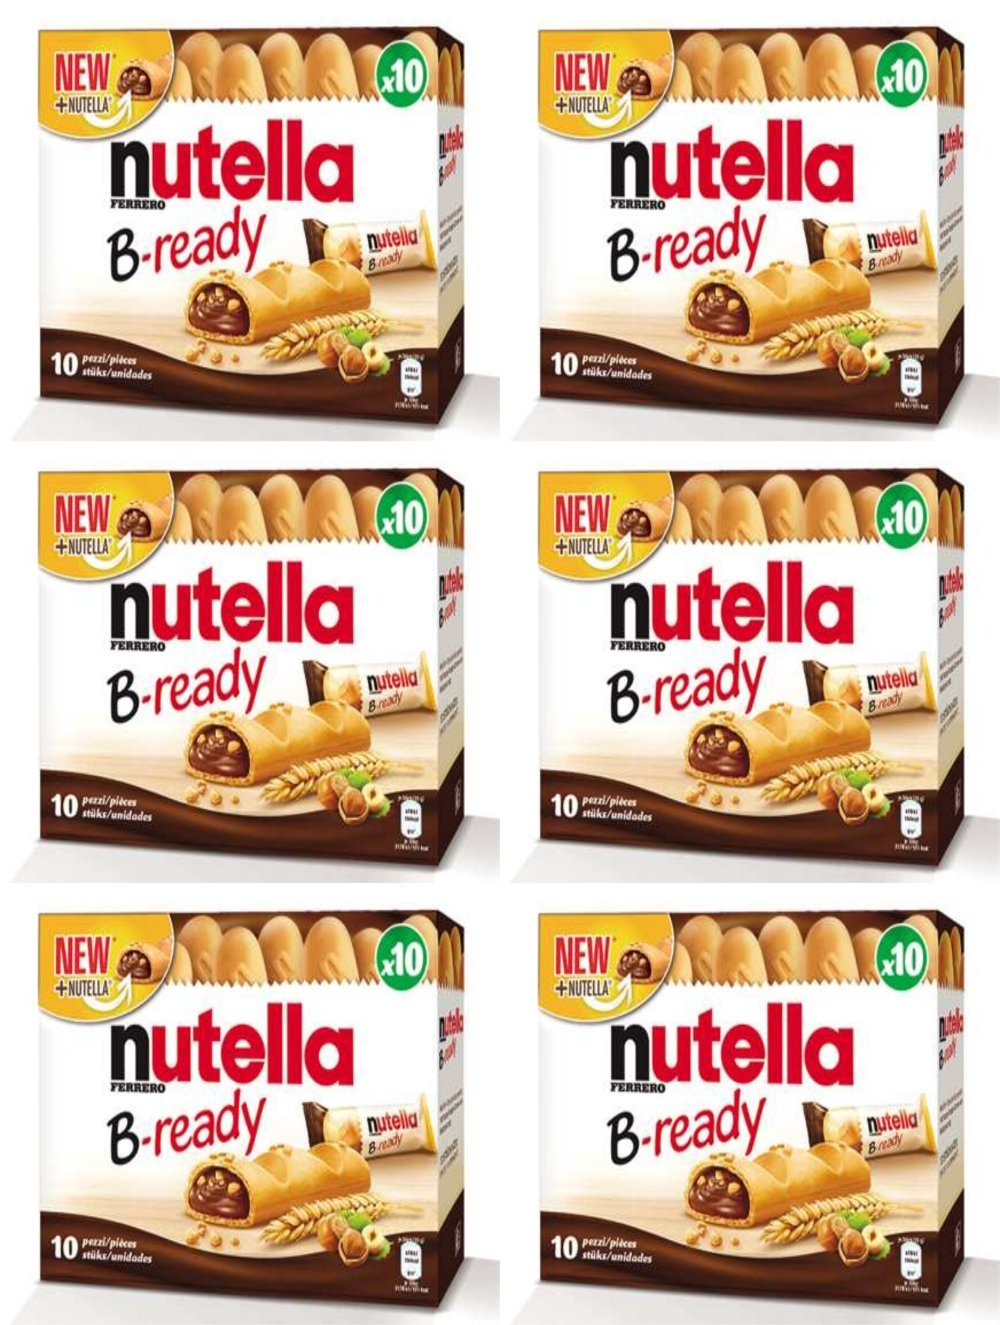 Ferrero: ''Nutella B-ready '' a crisp wafer of bread in the form of mini baguette stuffed with a creamy Nutella 10 pieces 7,76 oz (220g) pack of 6